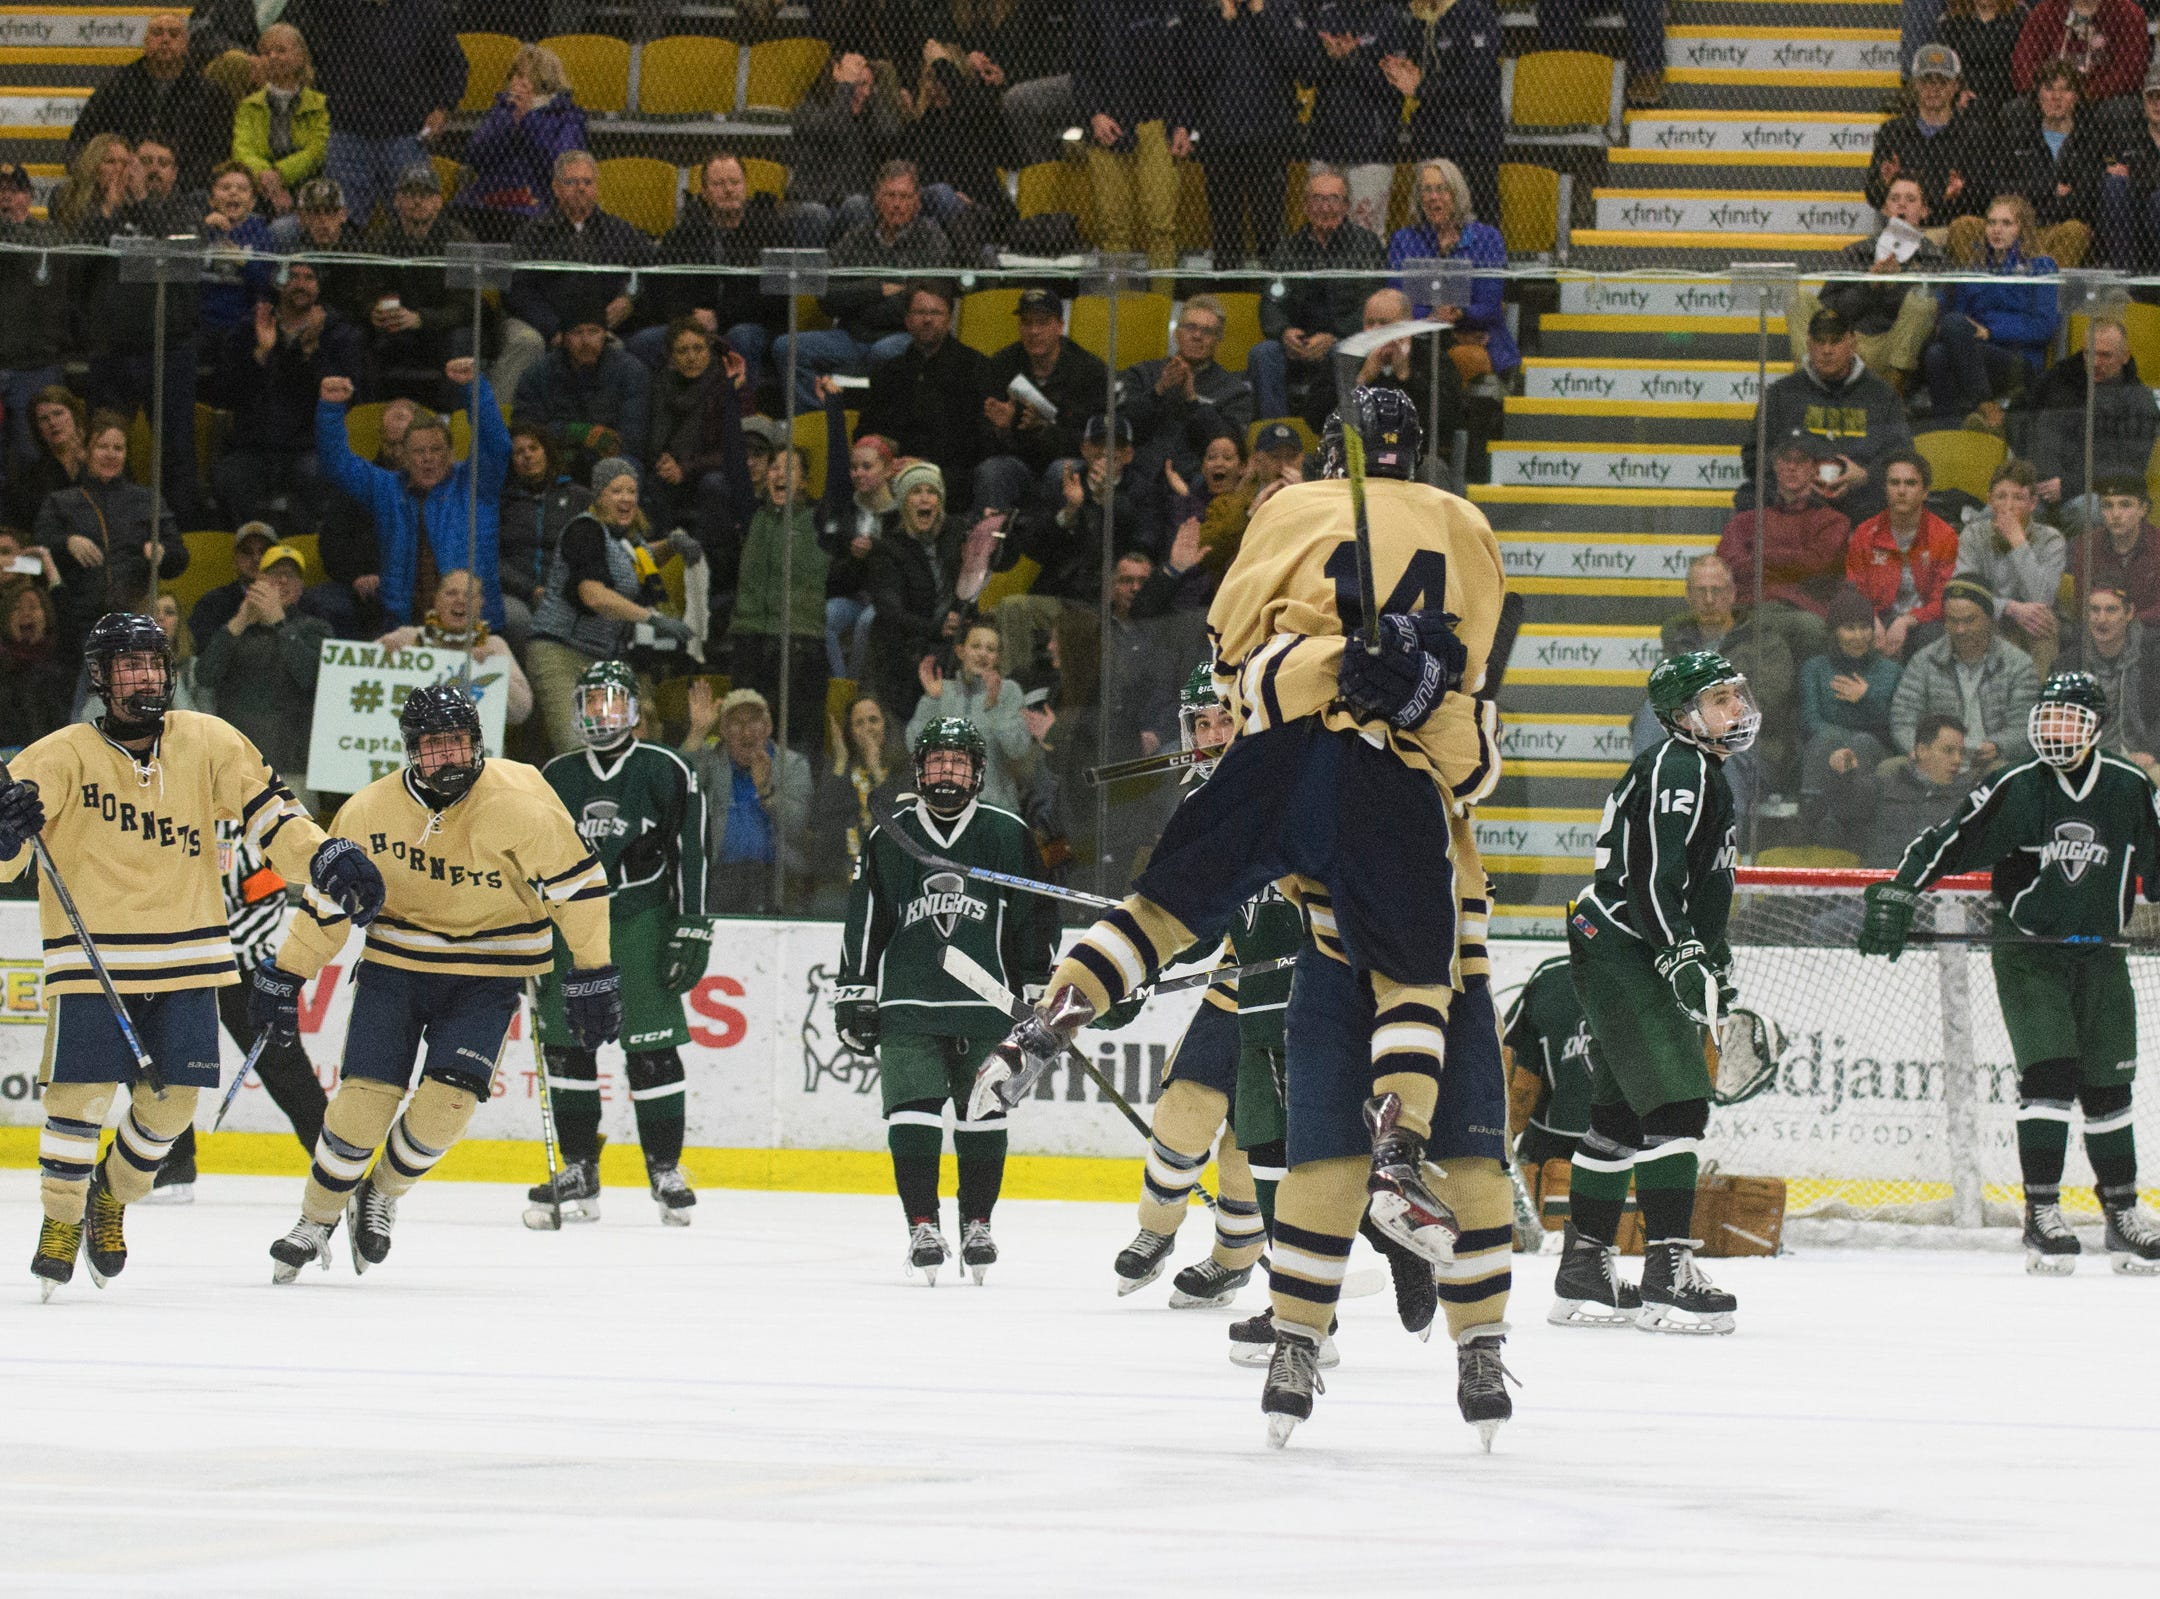 Essex celebrates a goal during the DI boys hockey championship game between the Rice Green Knights and the Essex Hornets at Gutterson Field House on Wednesday night March 13, 2019 in Burlington, Vermont.